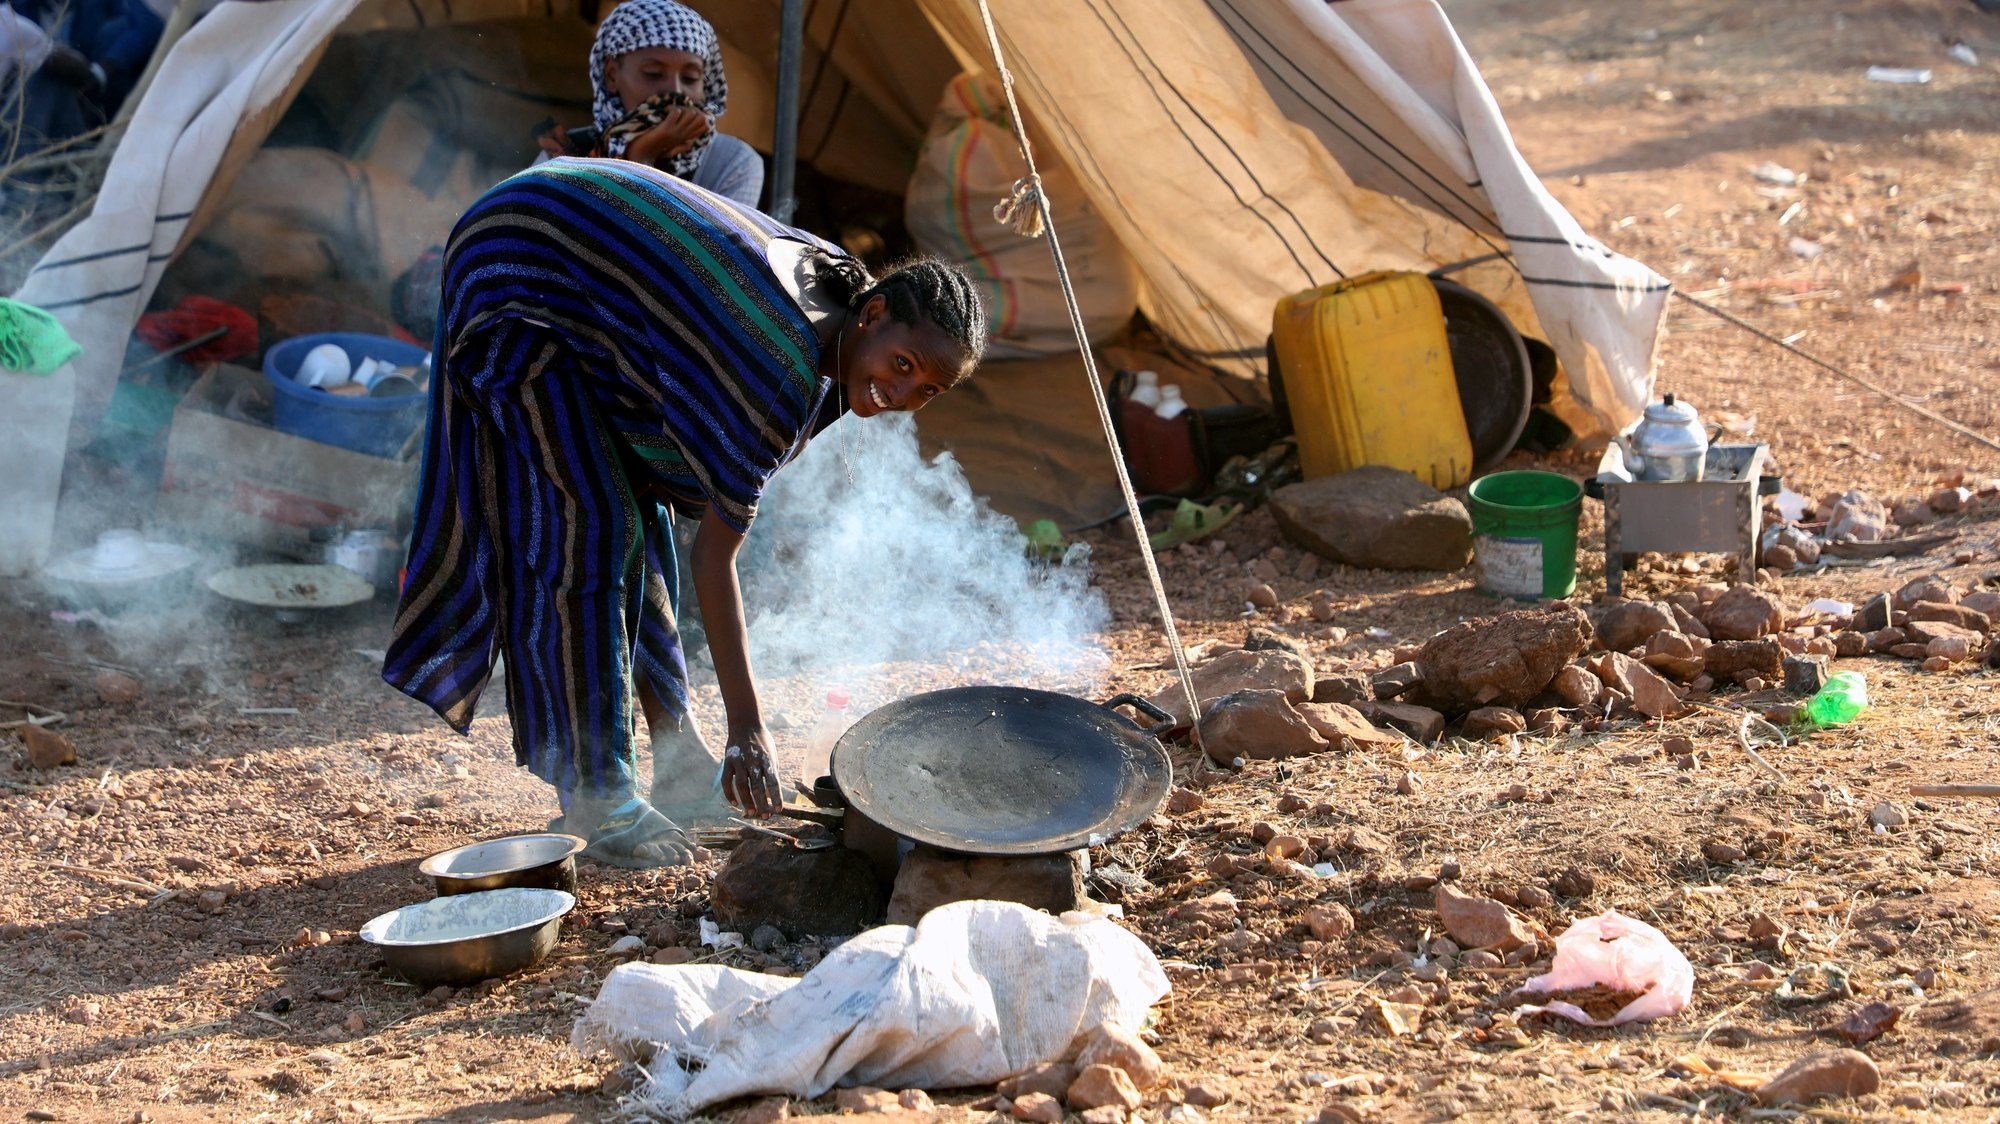 epa08849891 A woman preparing a meal outside her temporary shelter at Um Rakuba refugee camp in the state of al-Qadarif (also known as Gedaref), Sudan, 28 November 2020. The number of refugees in this camp reached nearly 10,000 refugees who crossed the border from Ethiopia to Sudan to escape the conflict in Tigray region of Ethiopia.  EPA/MOHAMMED ABU OBAID